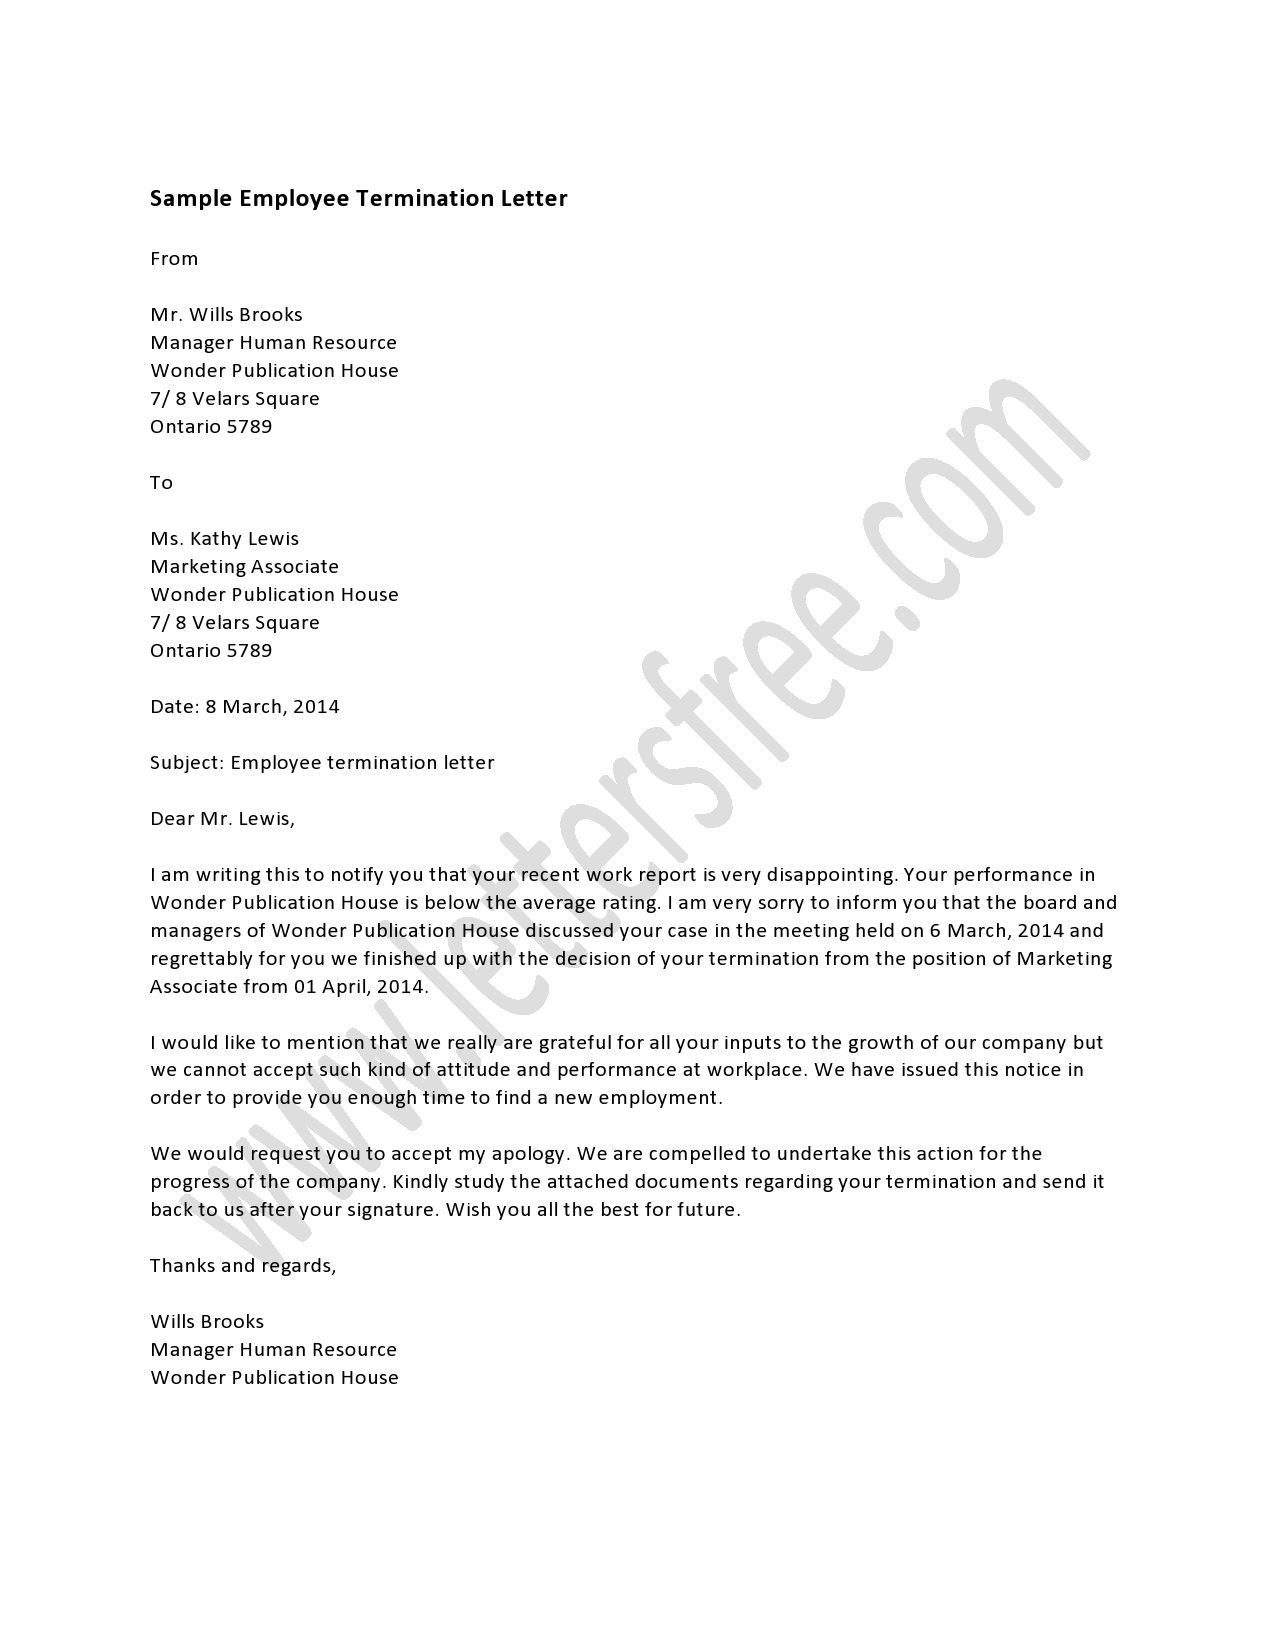 Employee Termination Letter Is A Template Used By Companies To Outline The  Terms Of An Employeeu0027s  Company Termination Letter